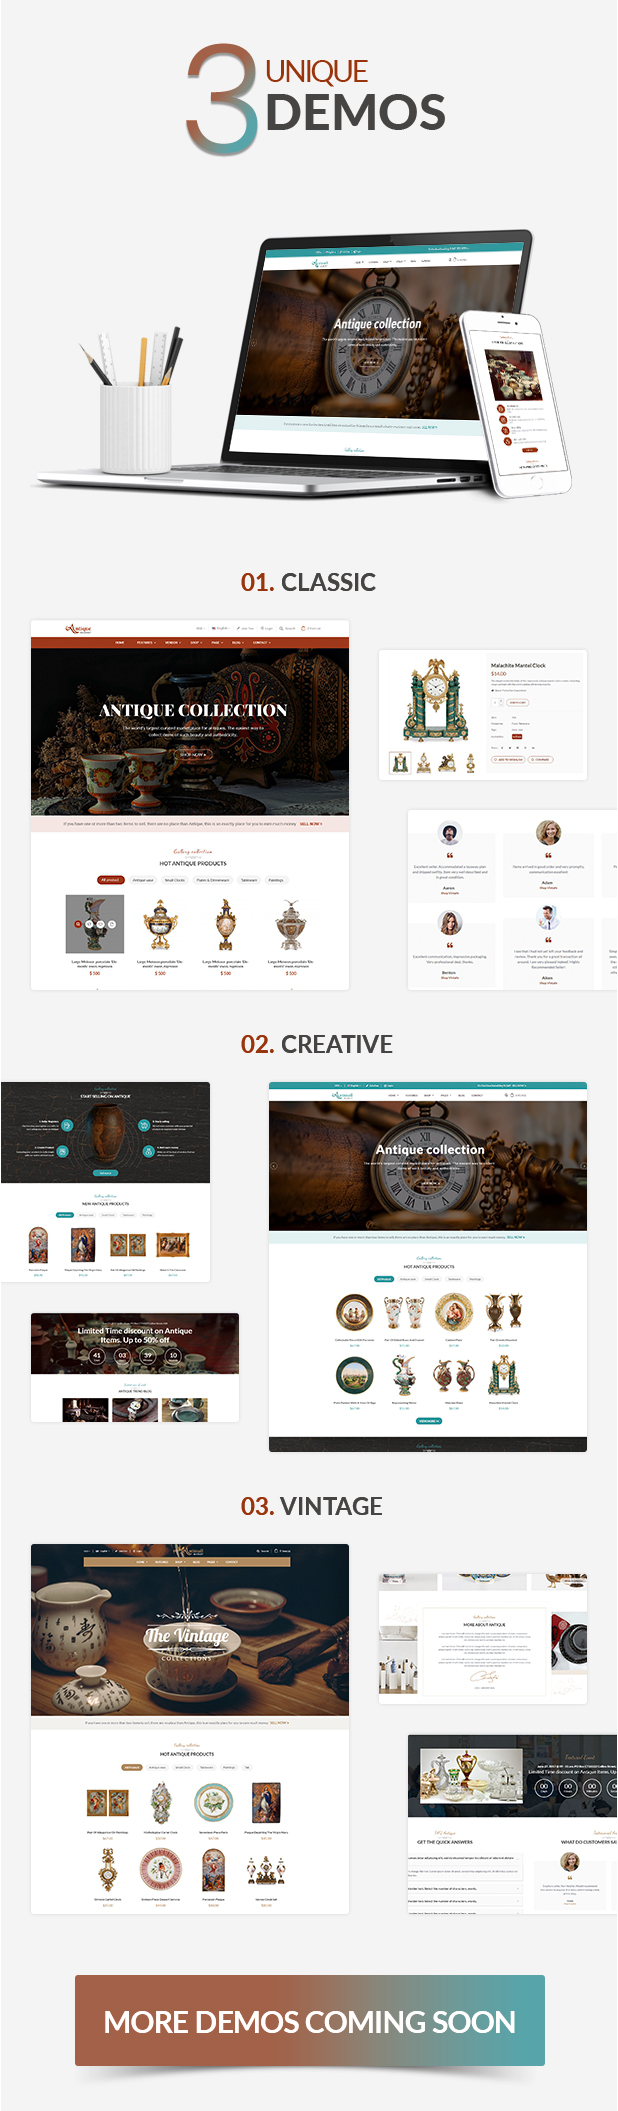 antimall - antique collection woocommerce wordpress theme (retail) Antimall – Antique Collection WooCommerce WordPress Theme (Retail) antique 09